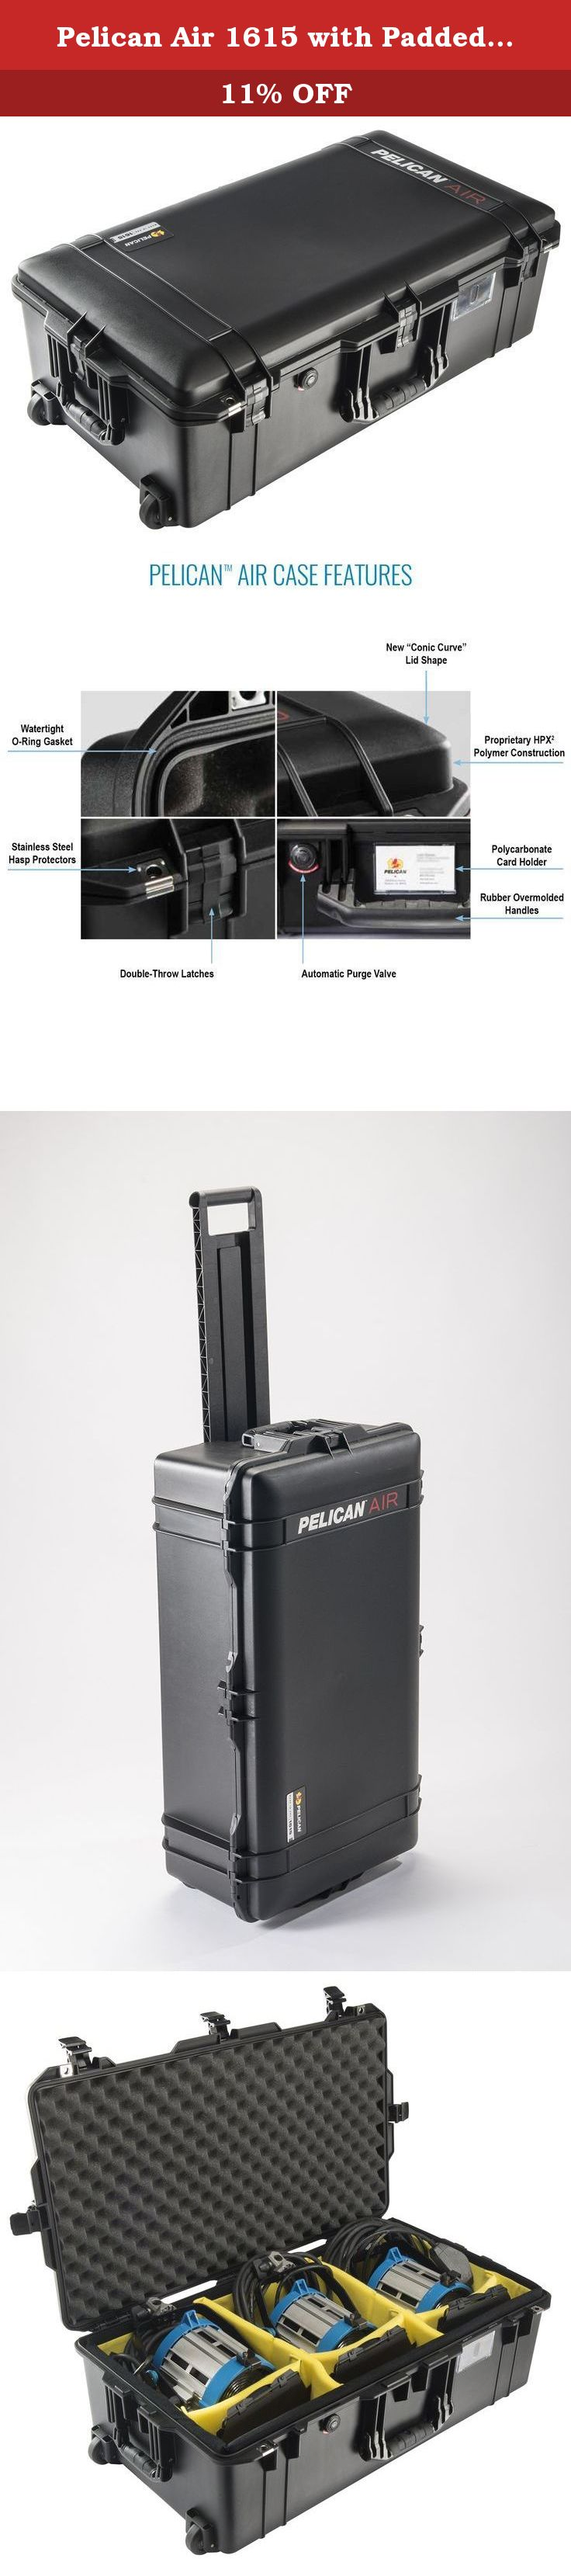 Pelican Air 1615 with Padded Dividers (Black). The Pelican